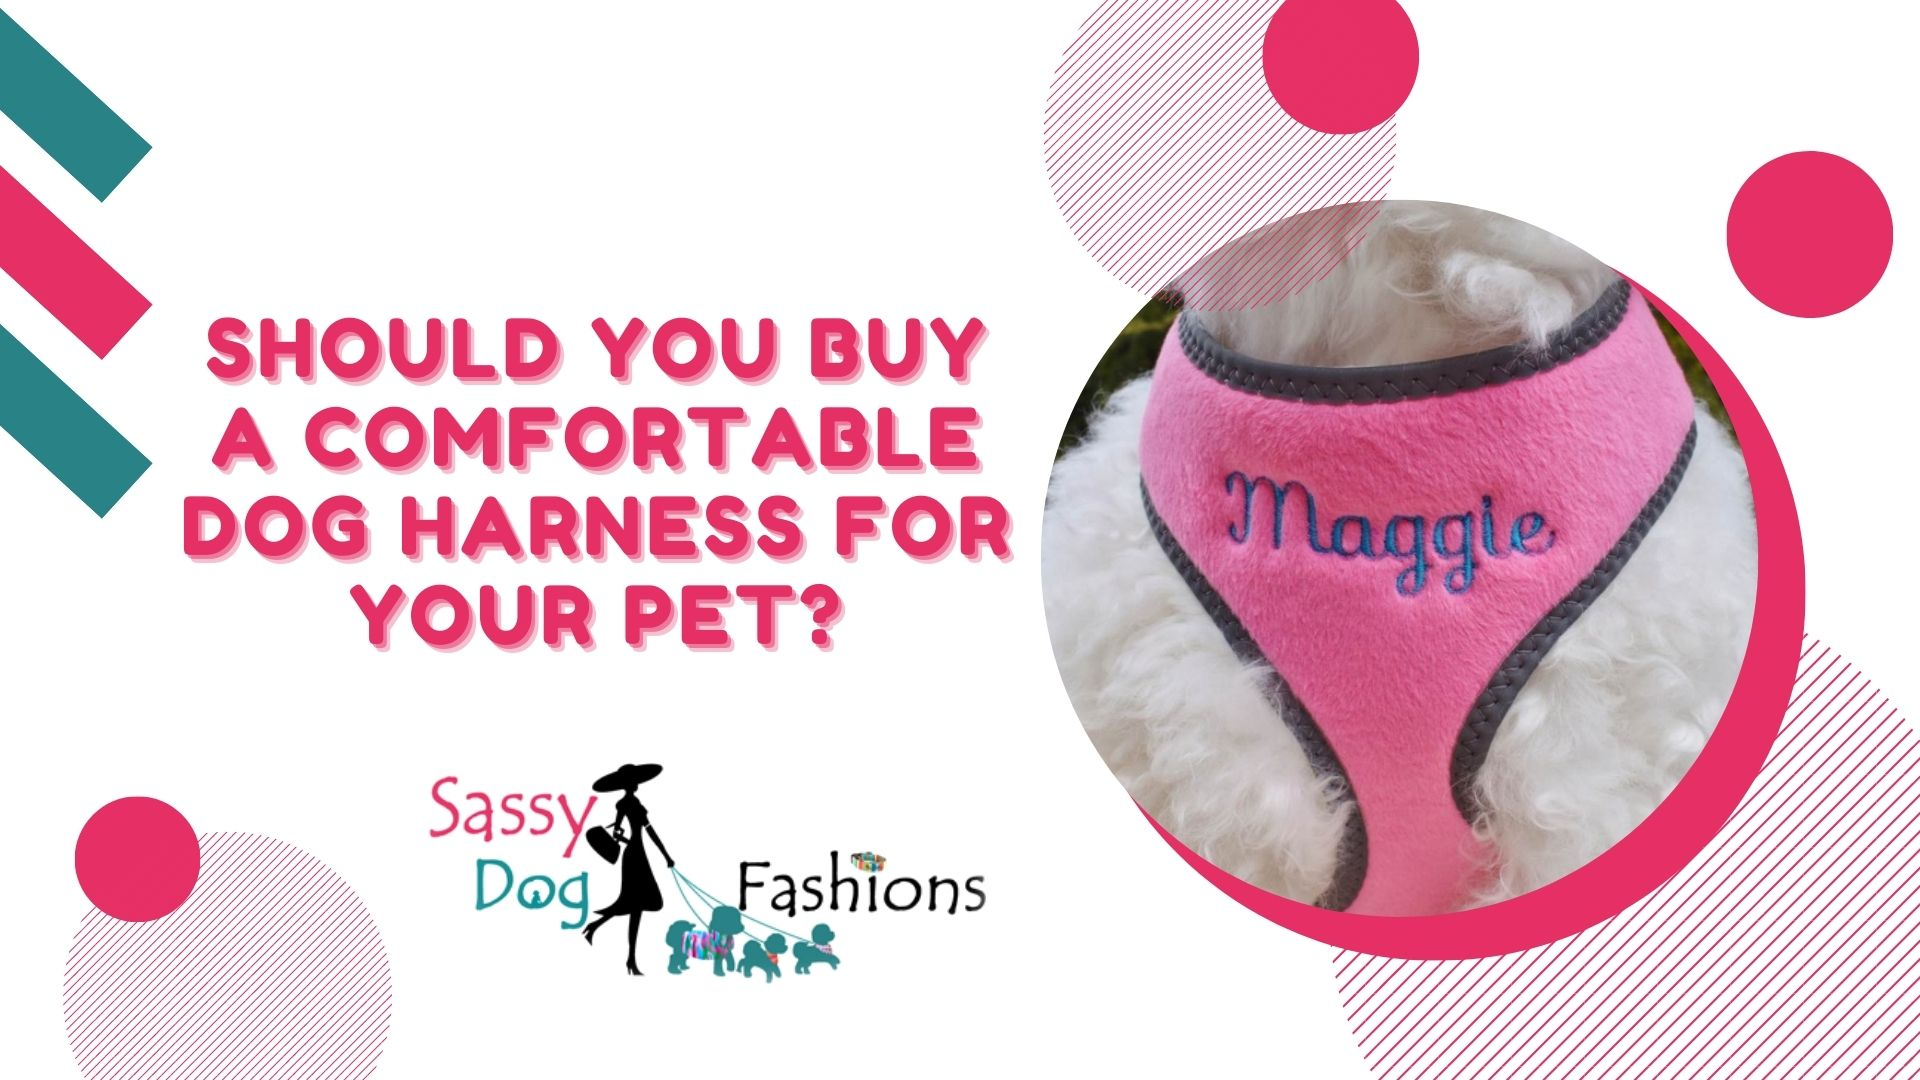 Should You Buy A Comfortable Dog Harness For Your Pet?